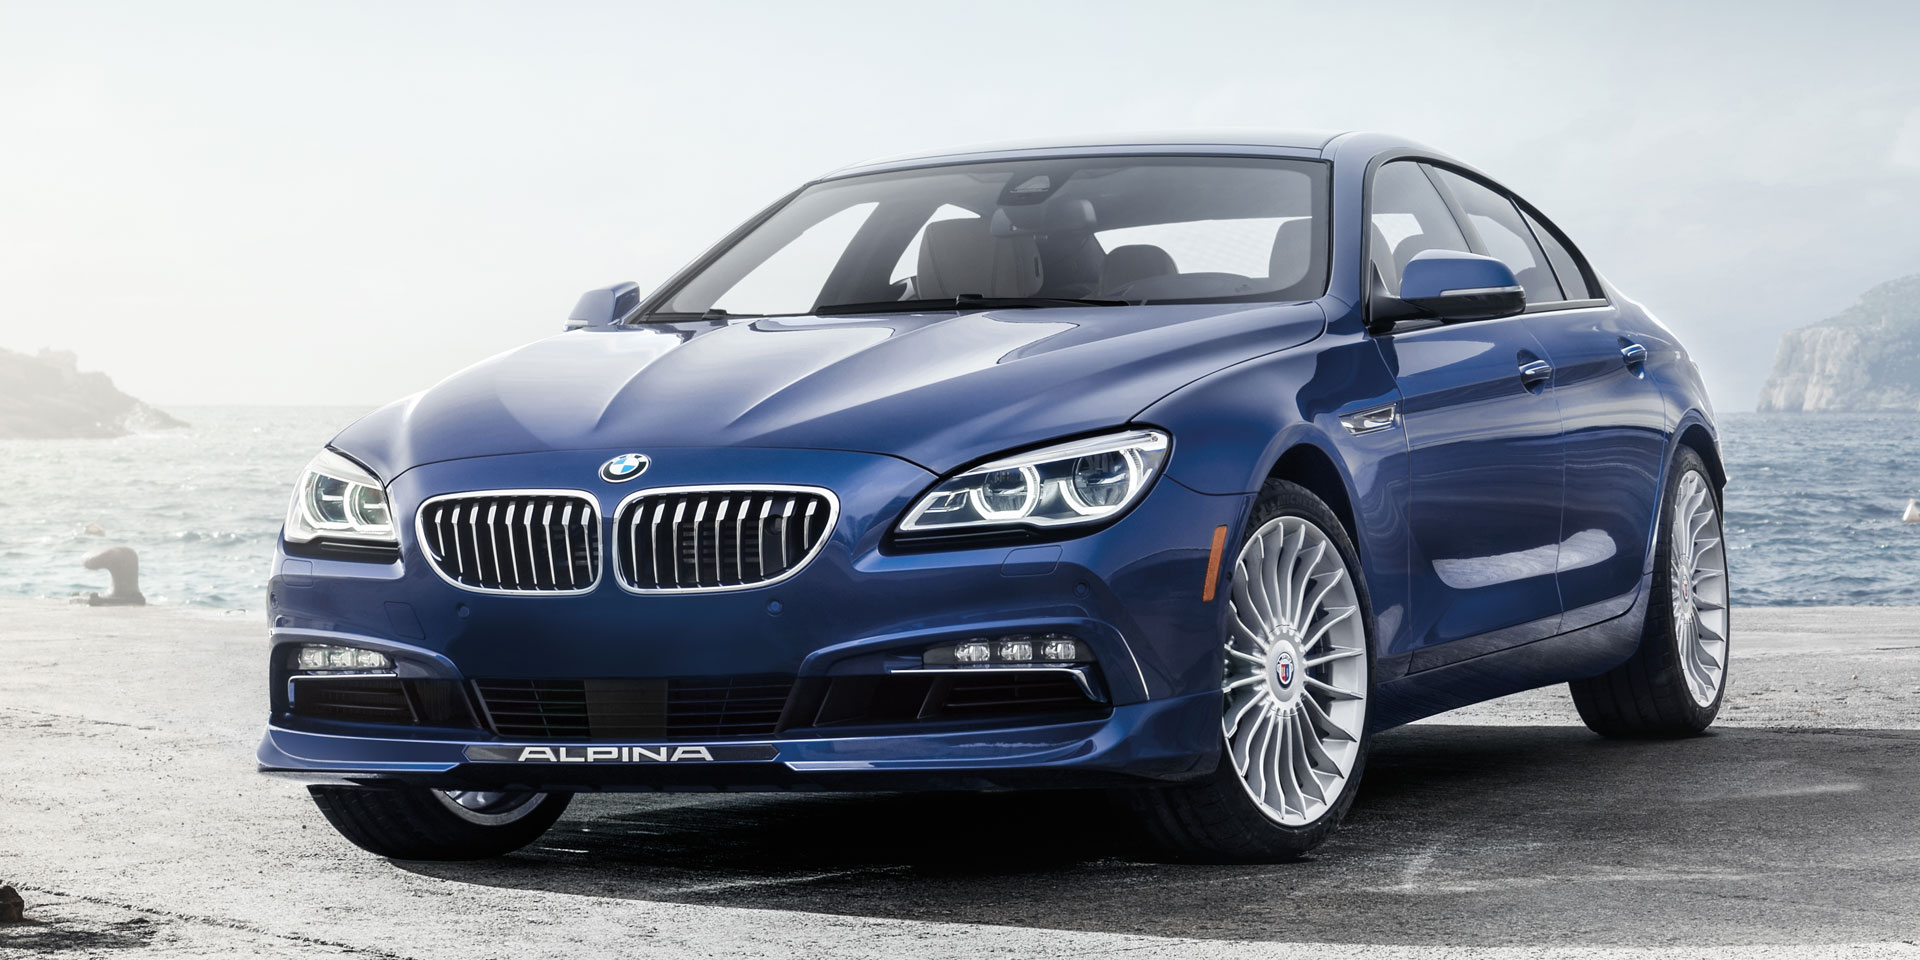 2017 Bmw 6 Series The Is Available As A Two Door Coupe Or Convertible And Four Gran Competes With Audi A5 S5